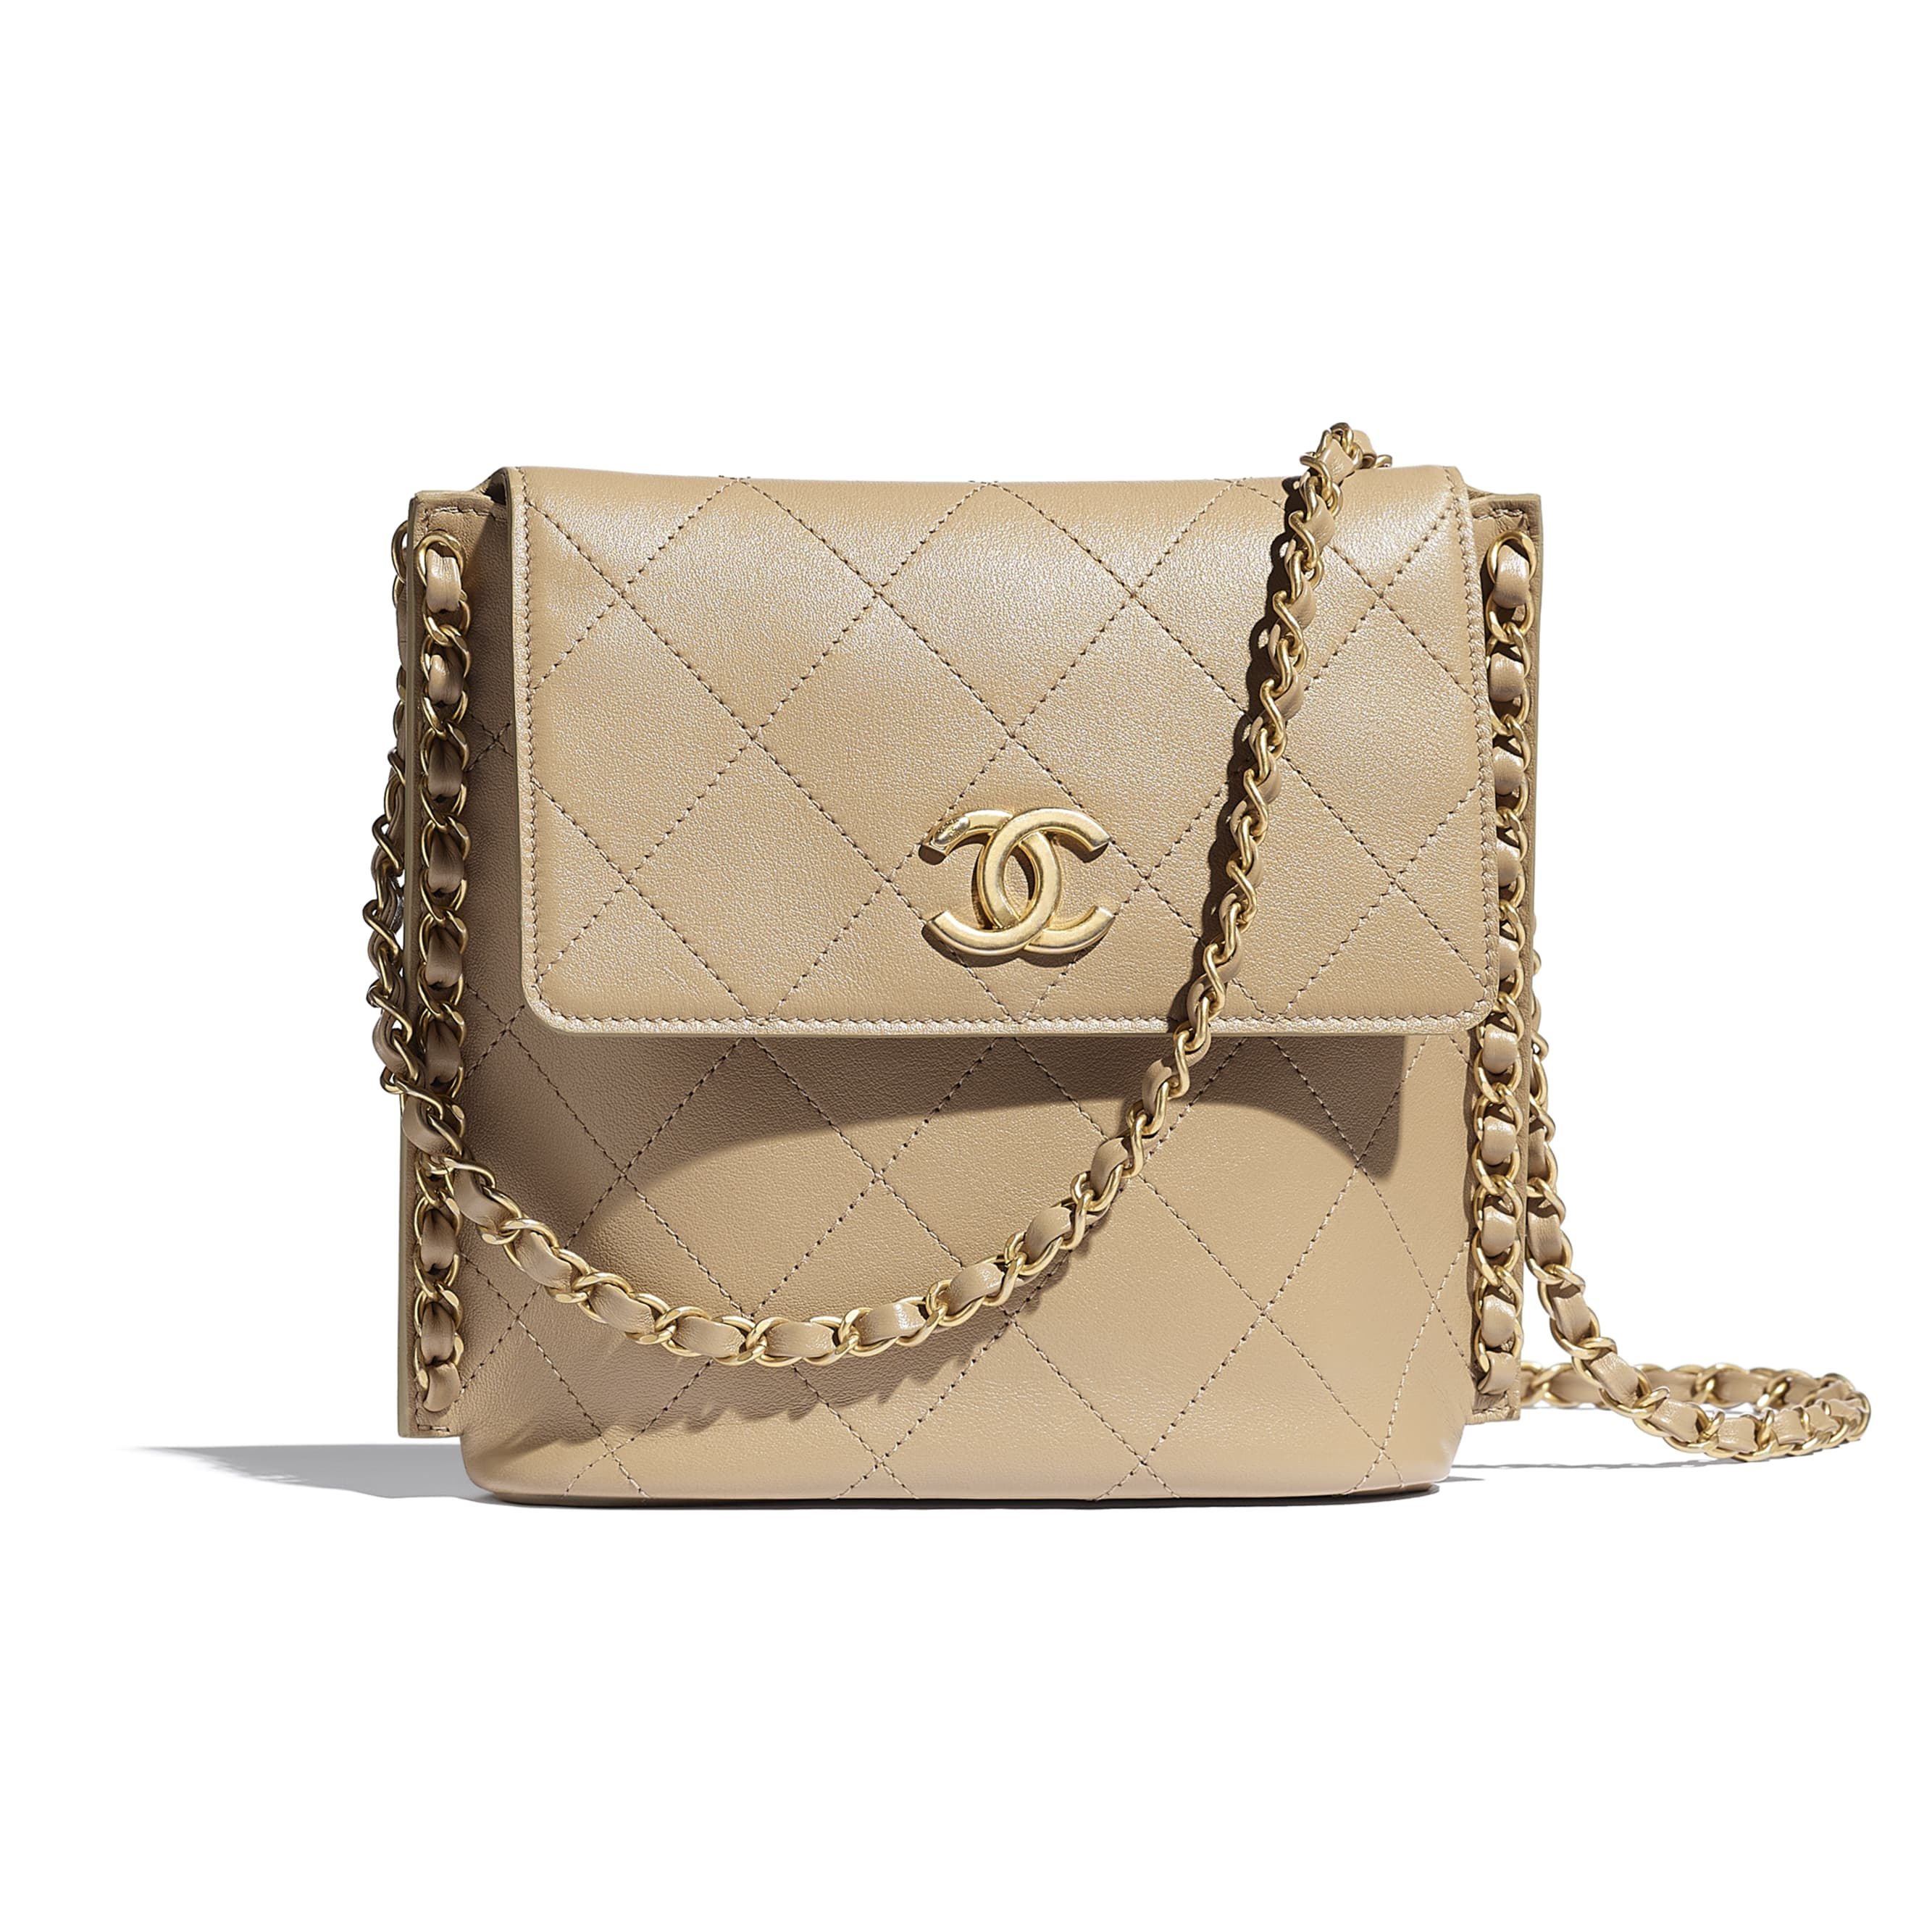 Small Hobo Bag - Beige - Calfskin & Gold-Tone Metal - CHANEL - Default view - see standard sized version